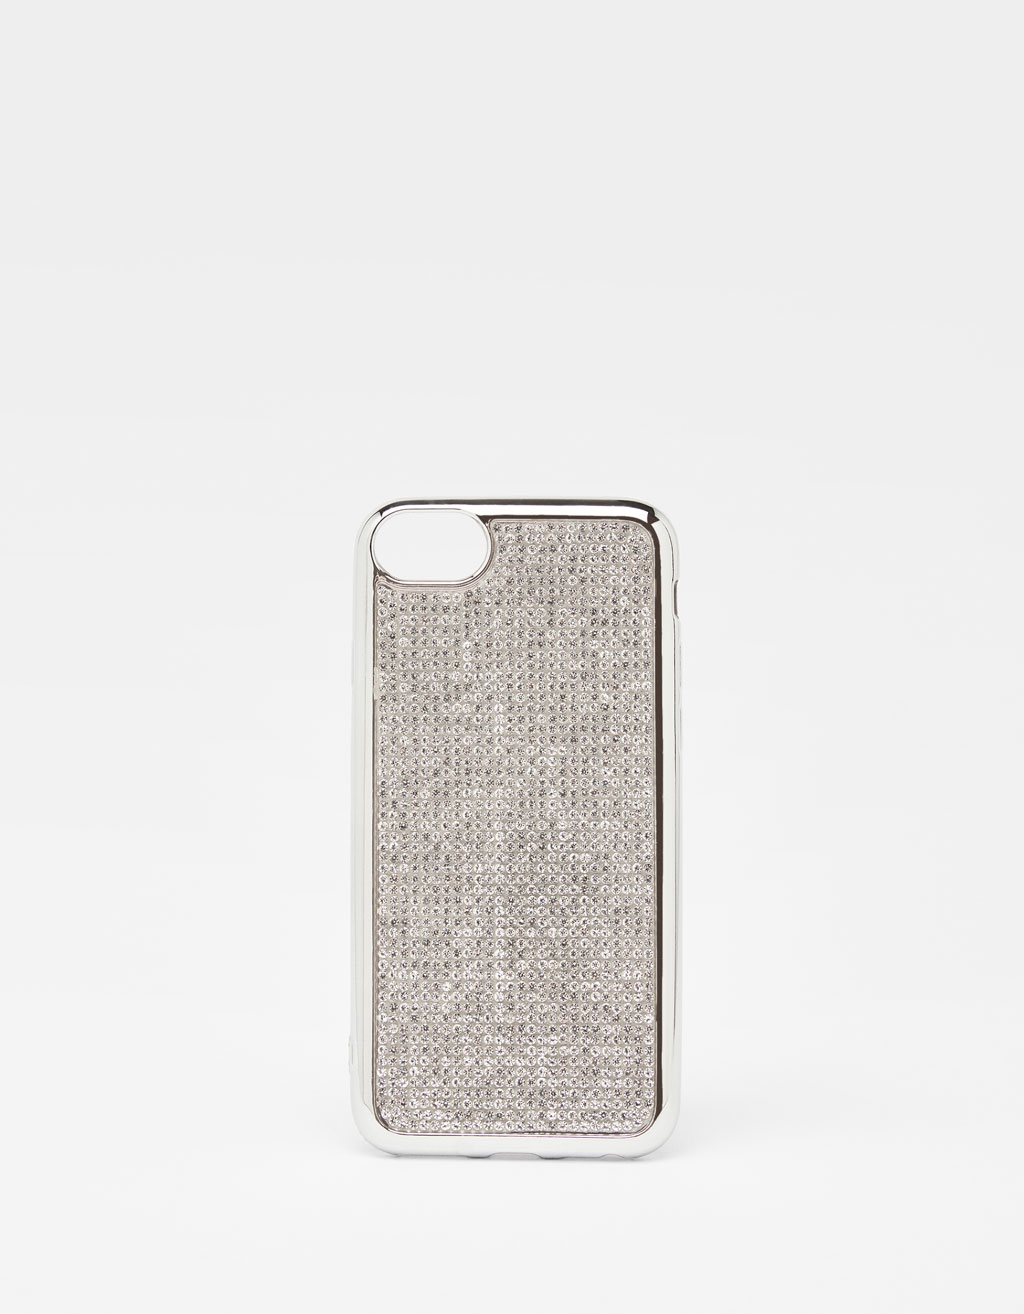 Carcasa con brillos  iPhone 6 / 6S / 7/ 8